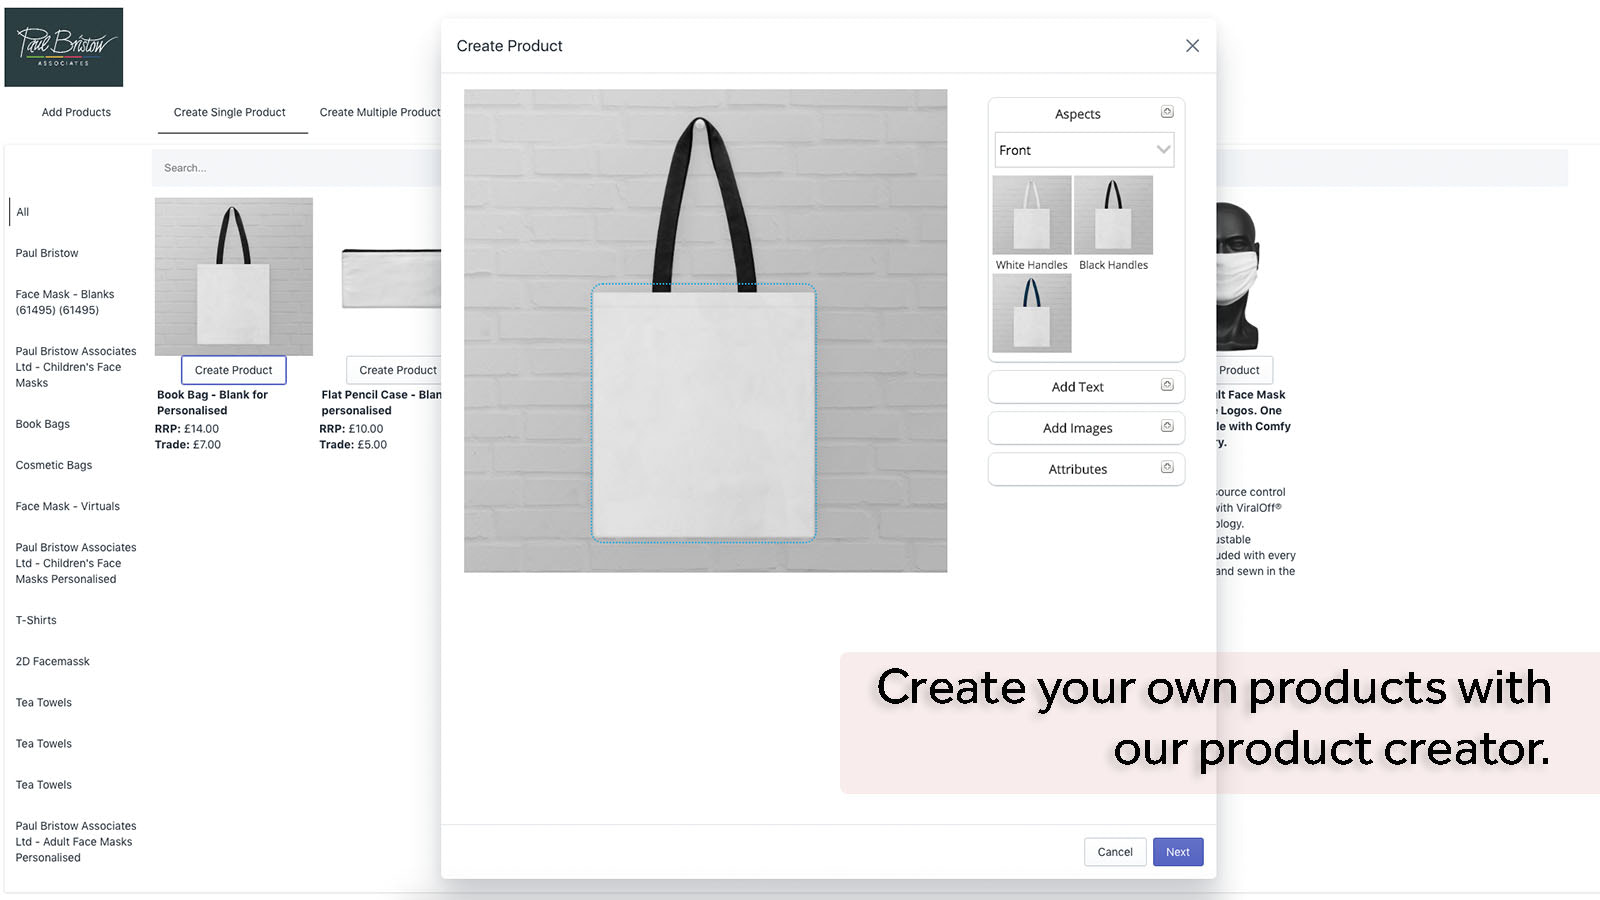 Create your own products with our product creator.